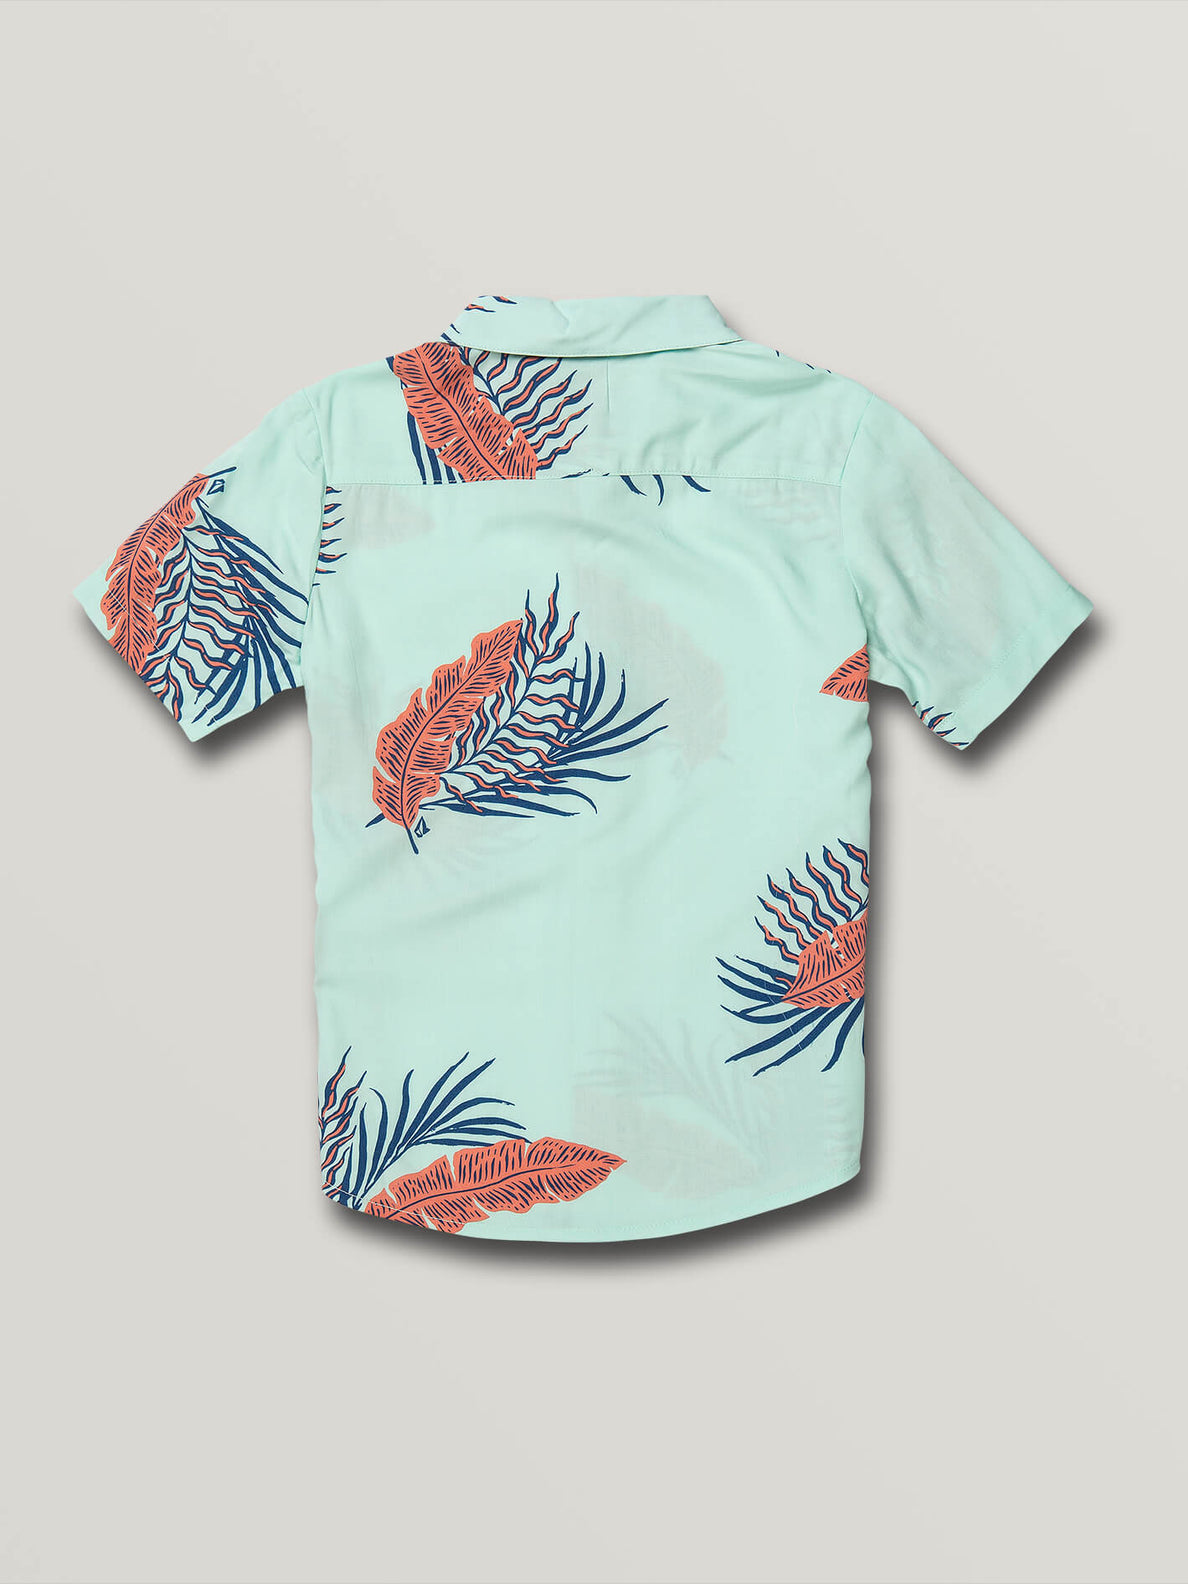 Bermuda S/s Ly Resin Blue (Y0412006_RES) [B]